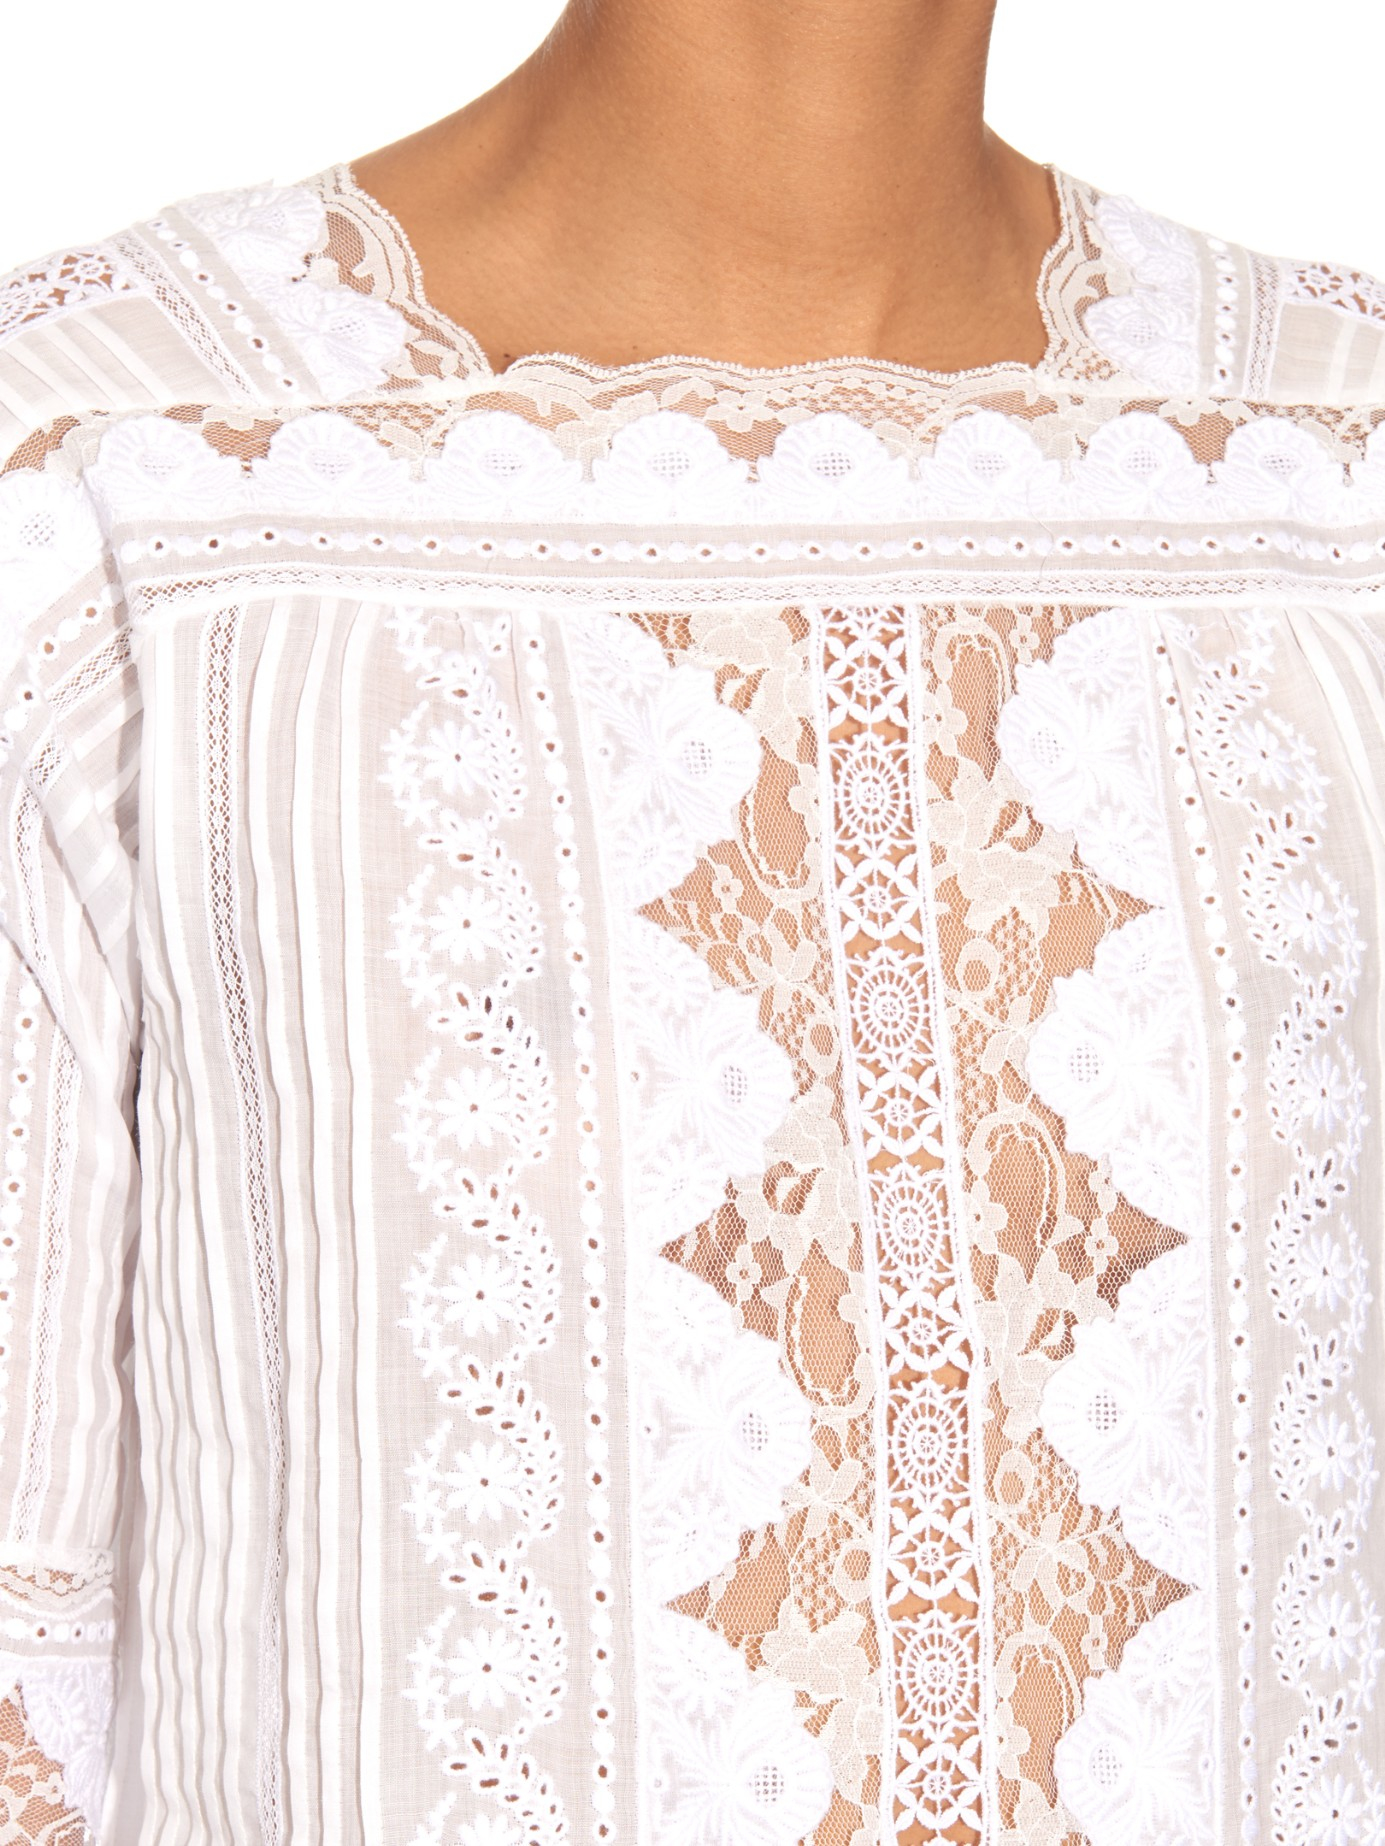 42441f98b Vanessa Bruno White Broderie-anglaise Lace-trimmed Top